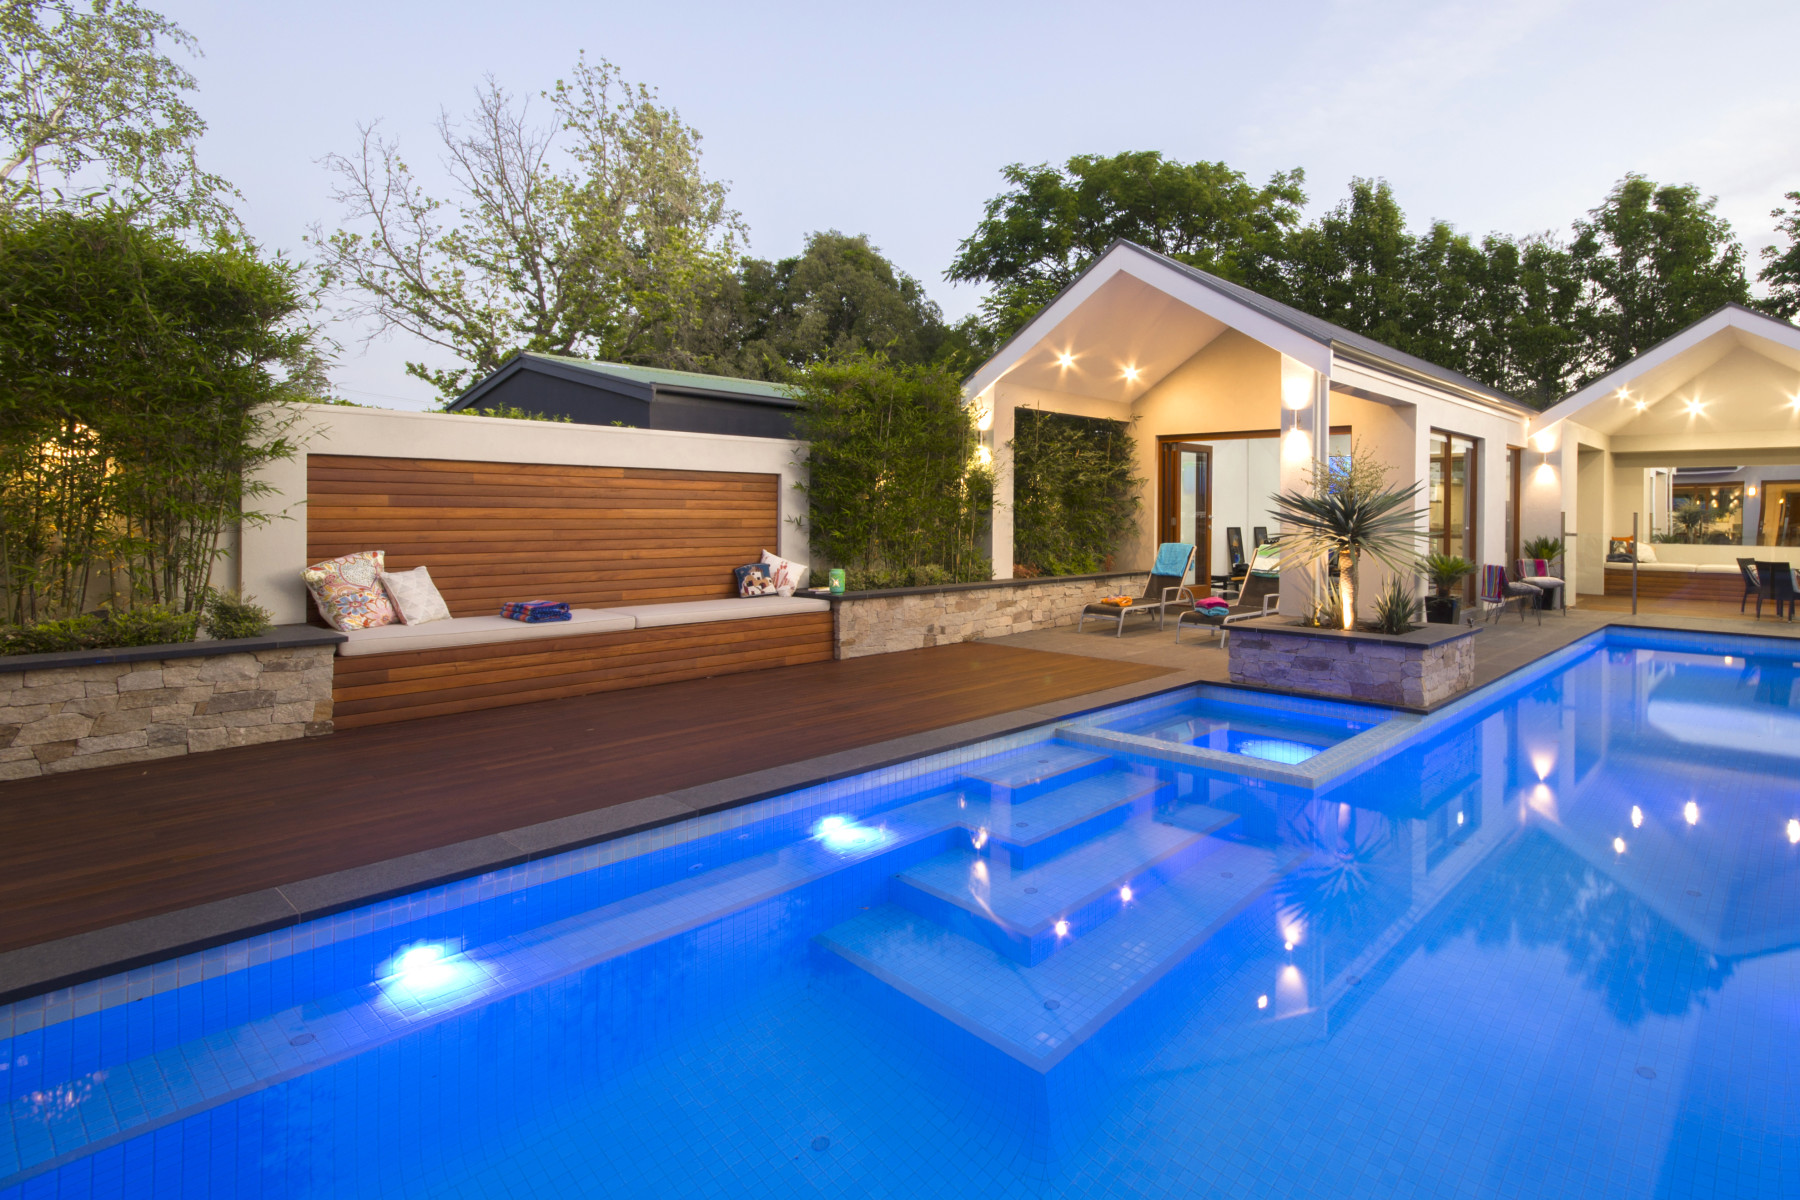 Swimming pool builders designs construction in adelaide for Swimming pool builders